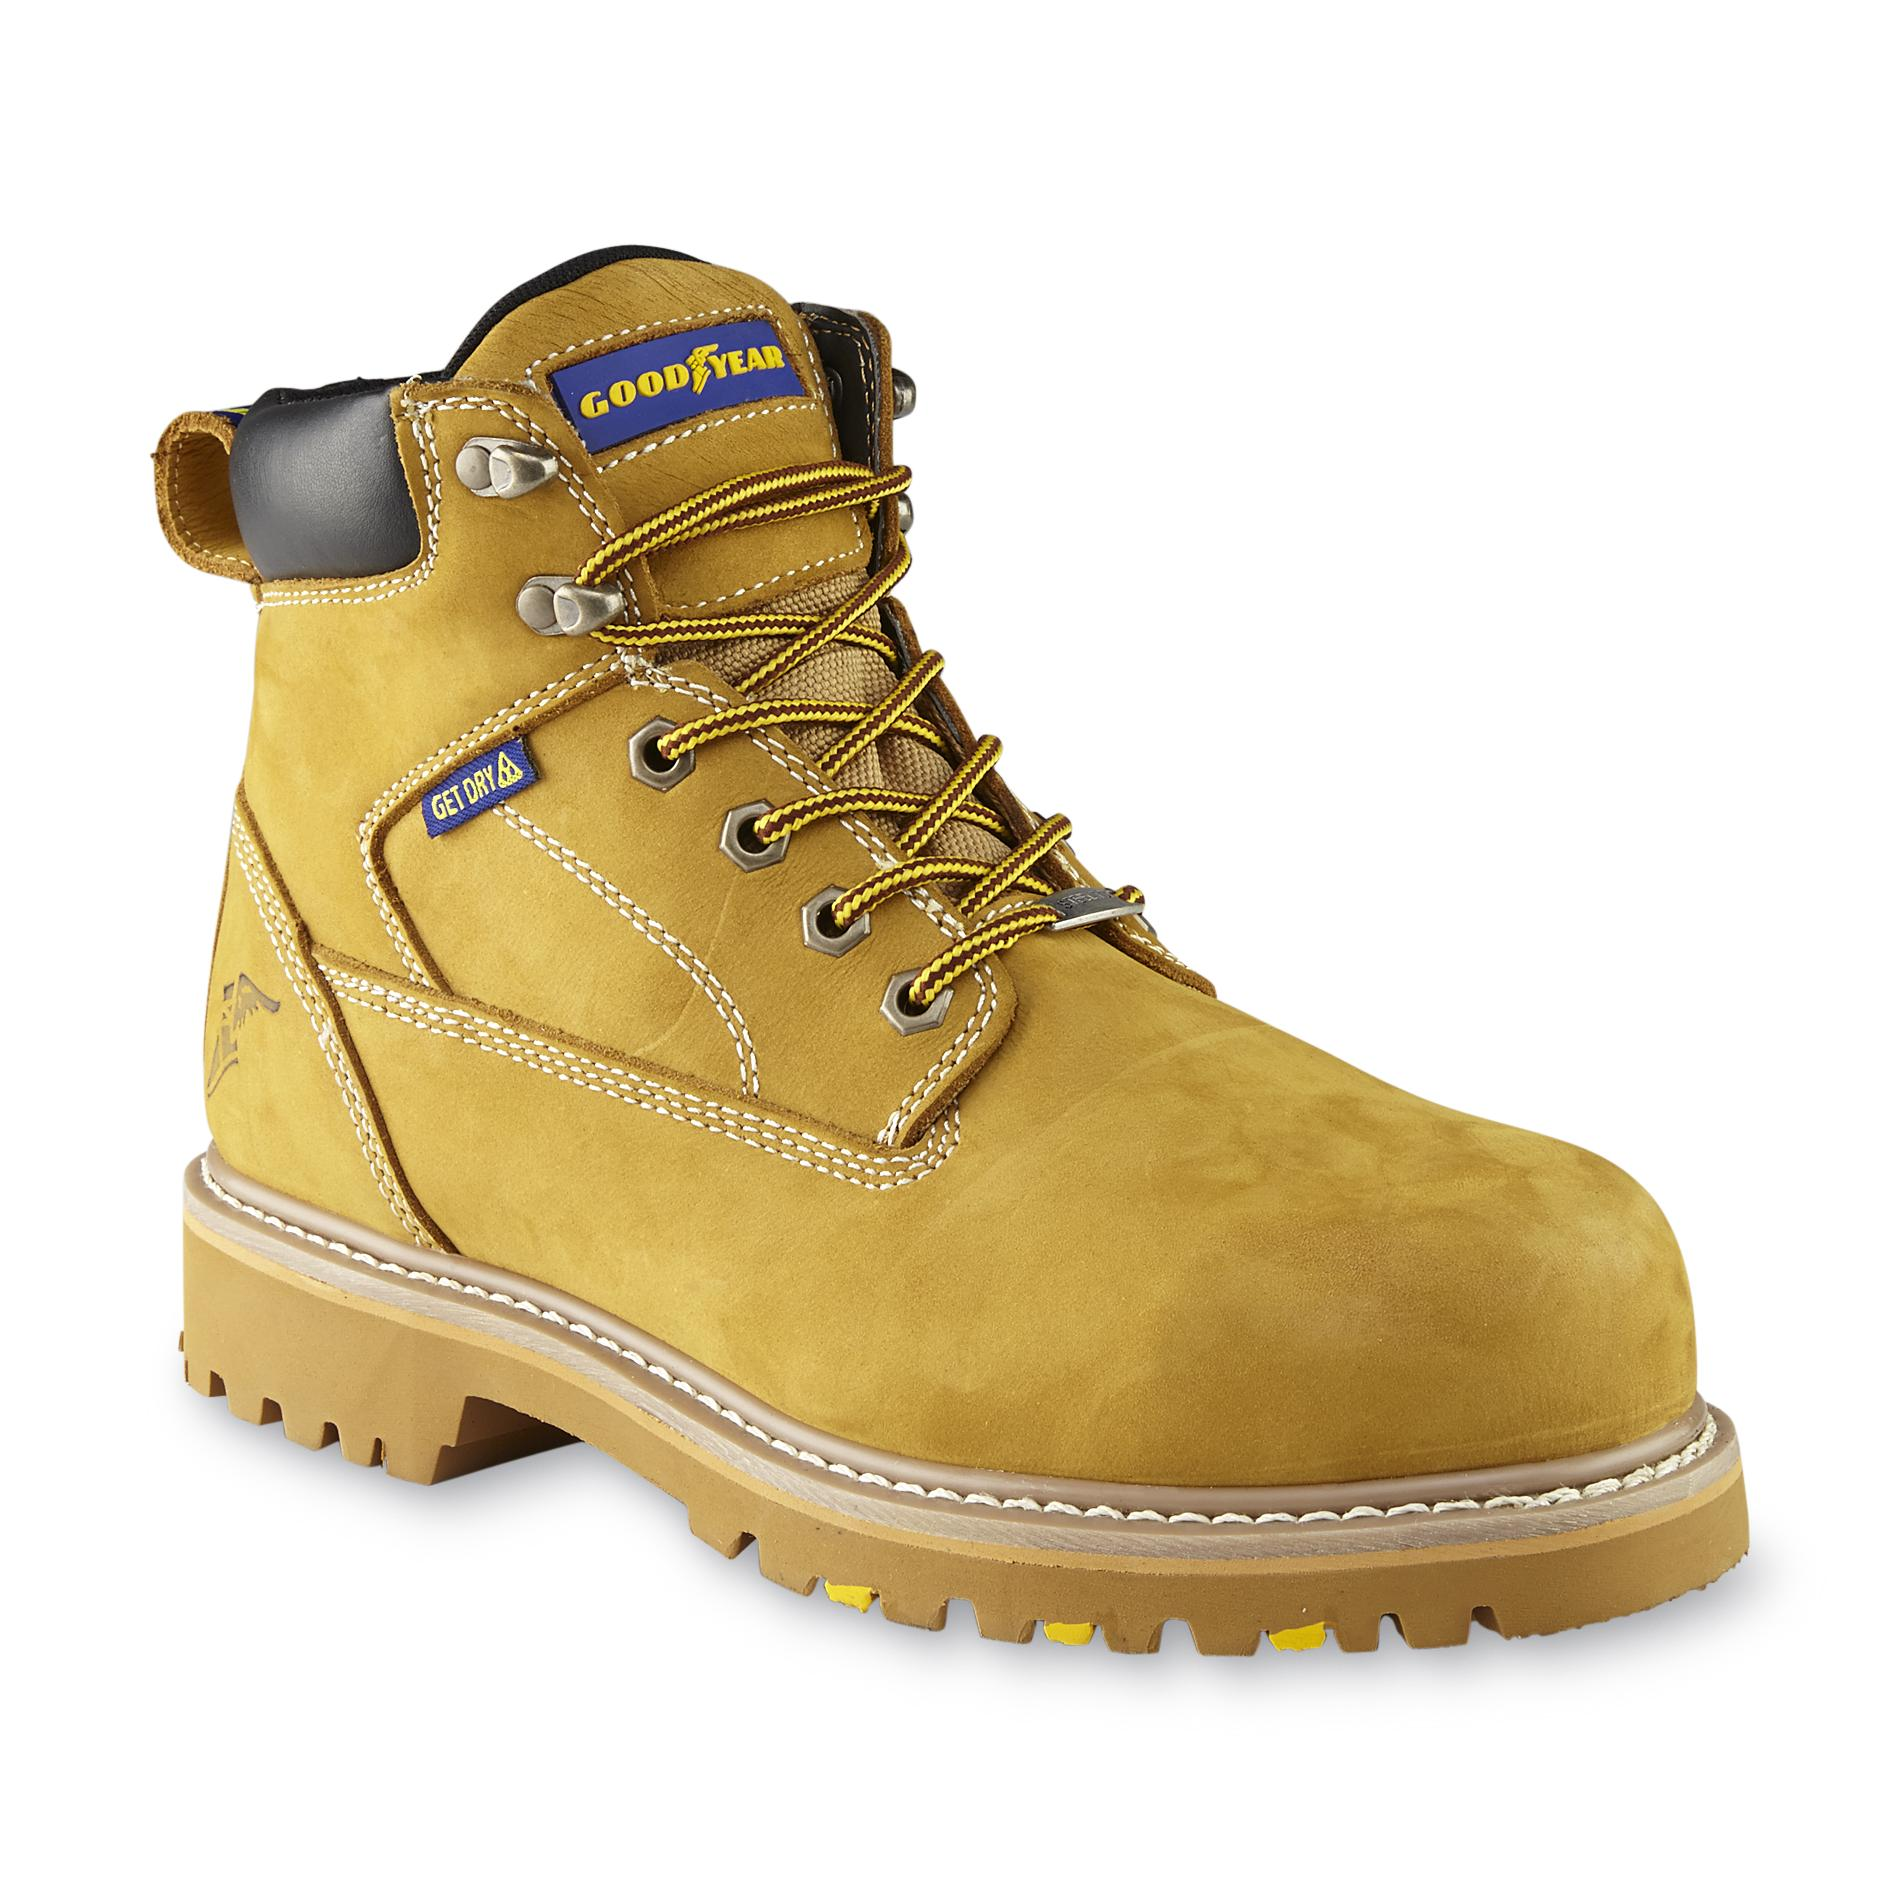 Goodyear Men's Daytona Tan Waterproof Steel Toe Work Boot GY6361C - Wide Width